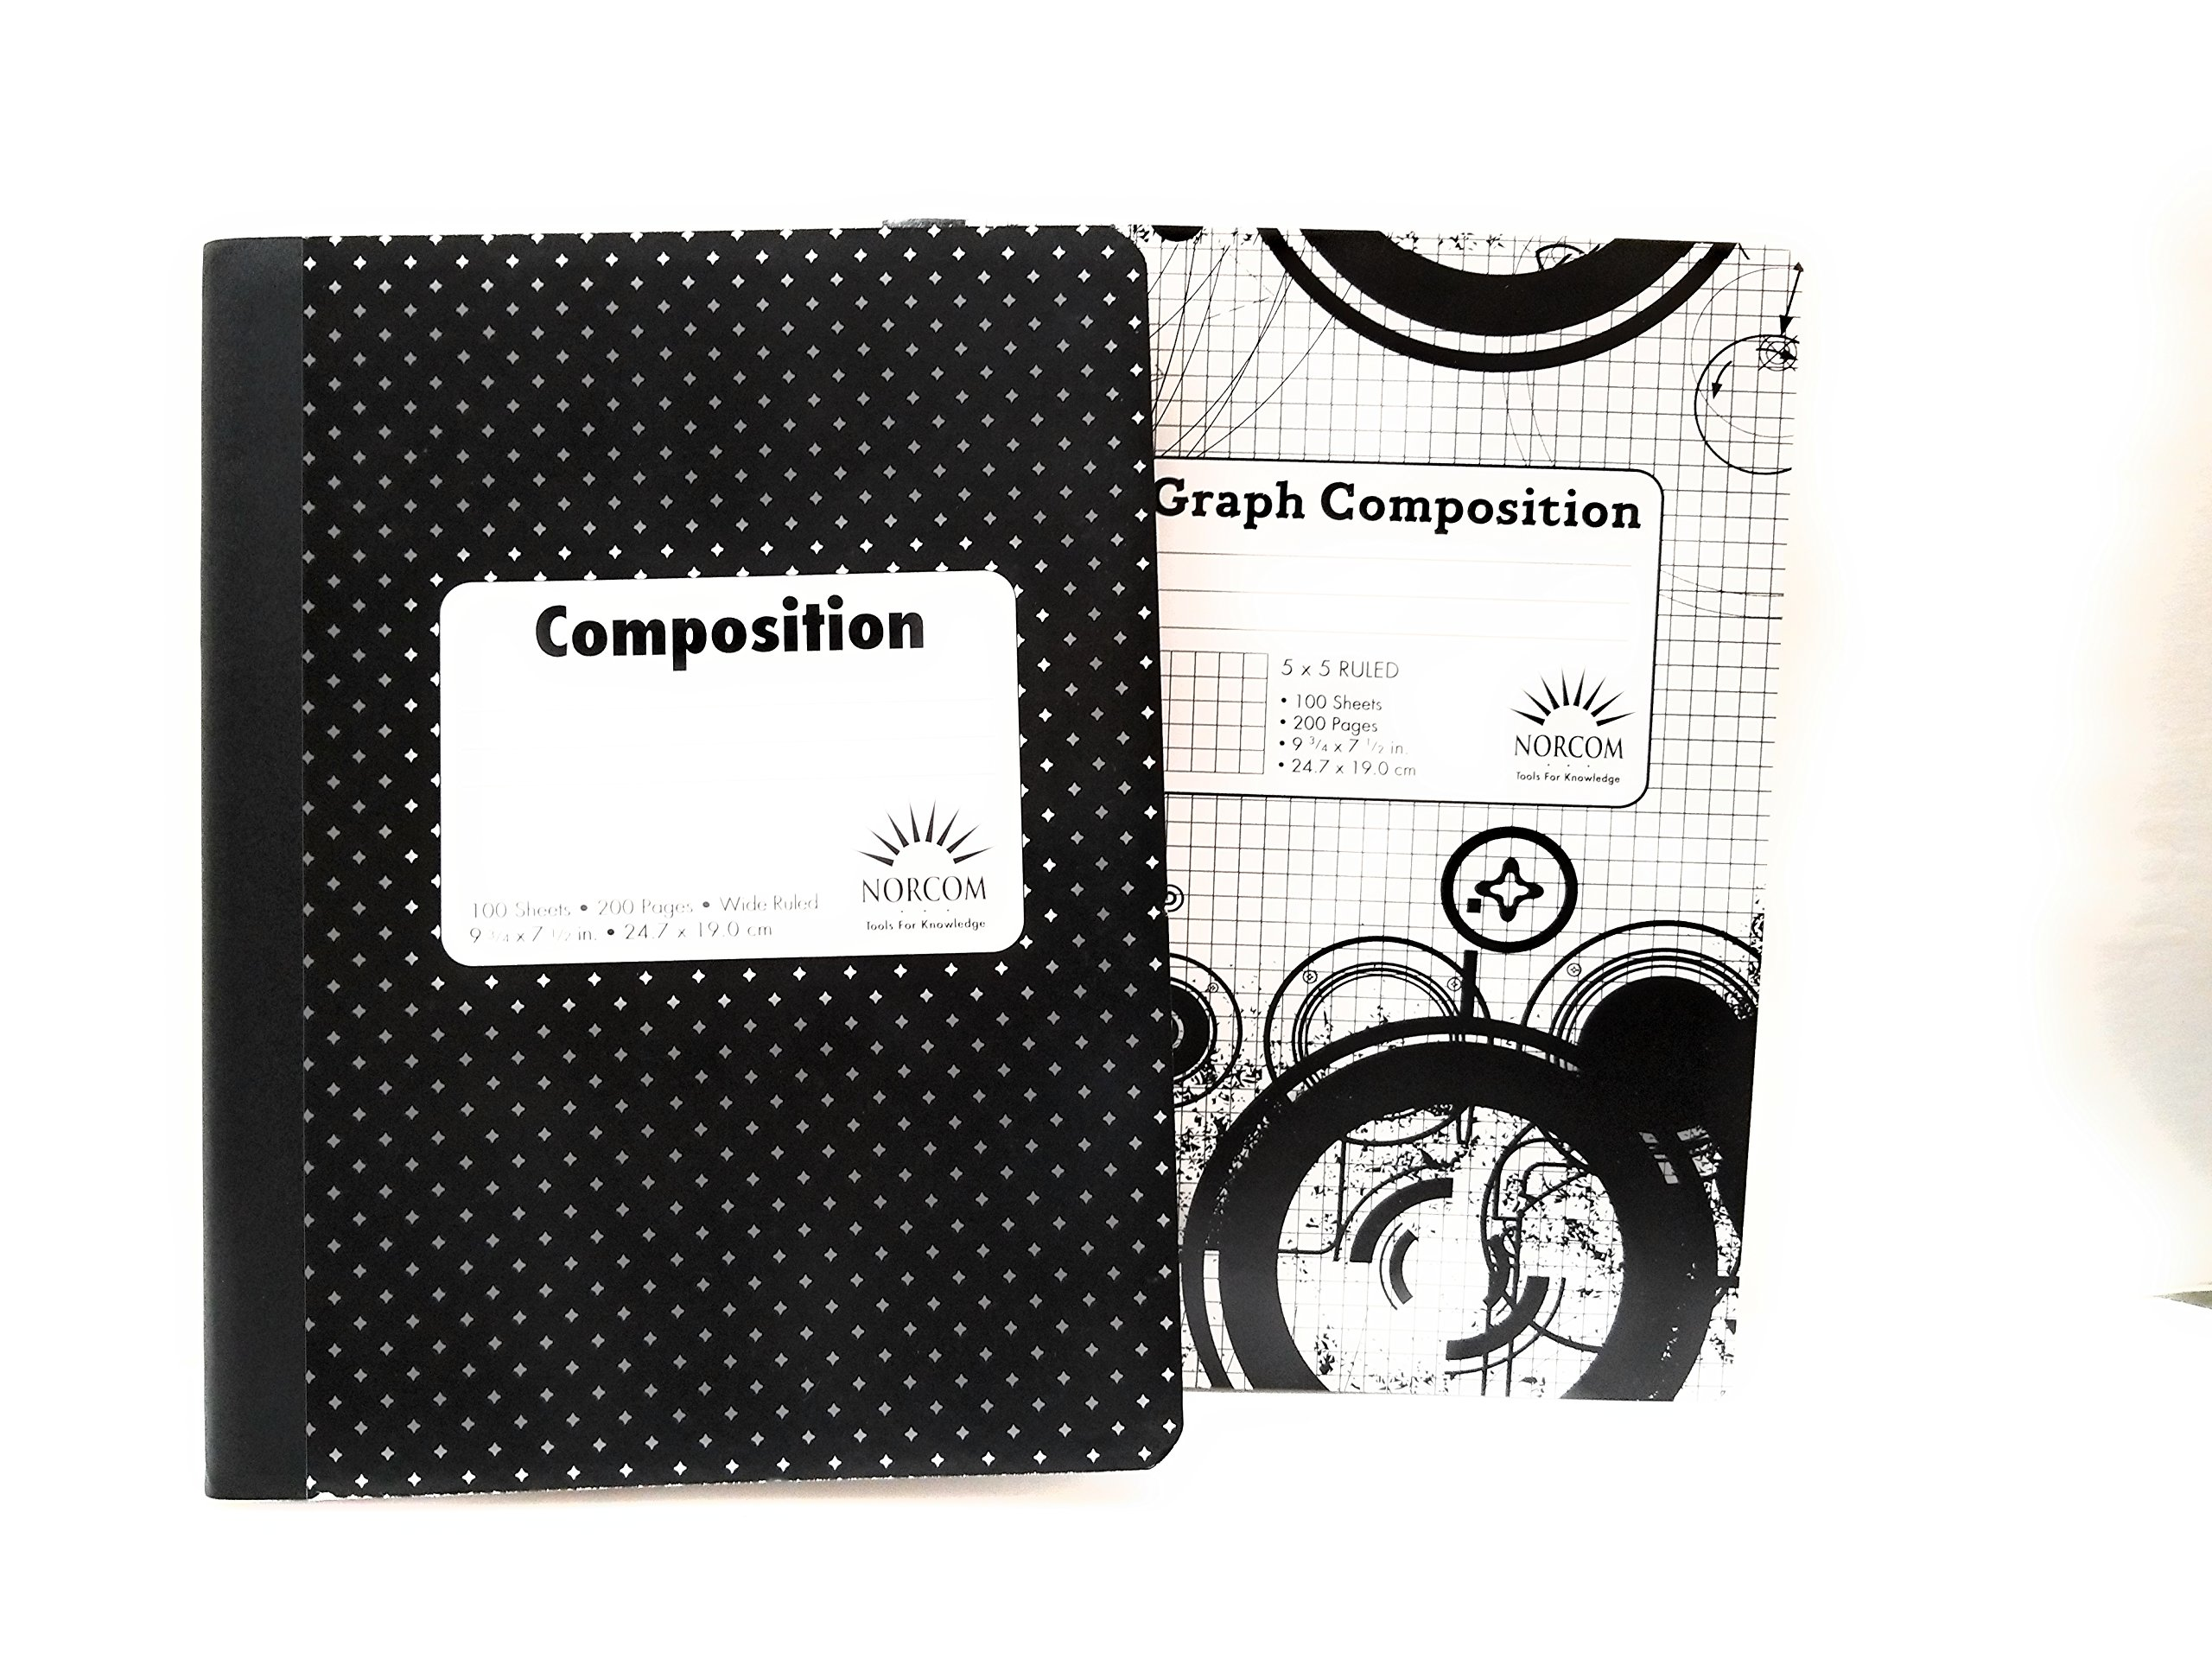 Black & White PolkaDot Composition Notebook 5 x 5 Graph Notebook - Pack of 2